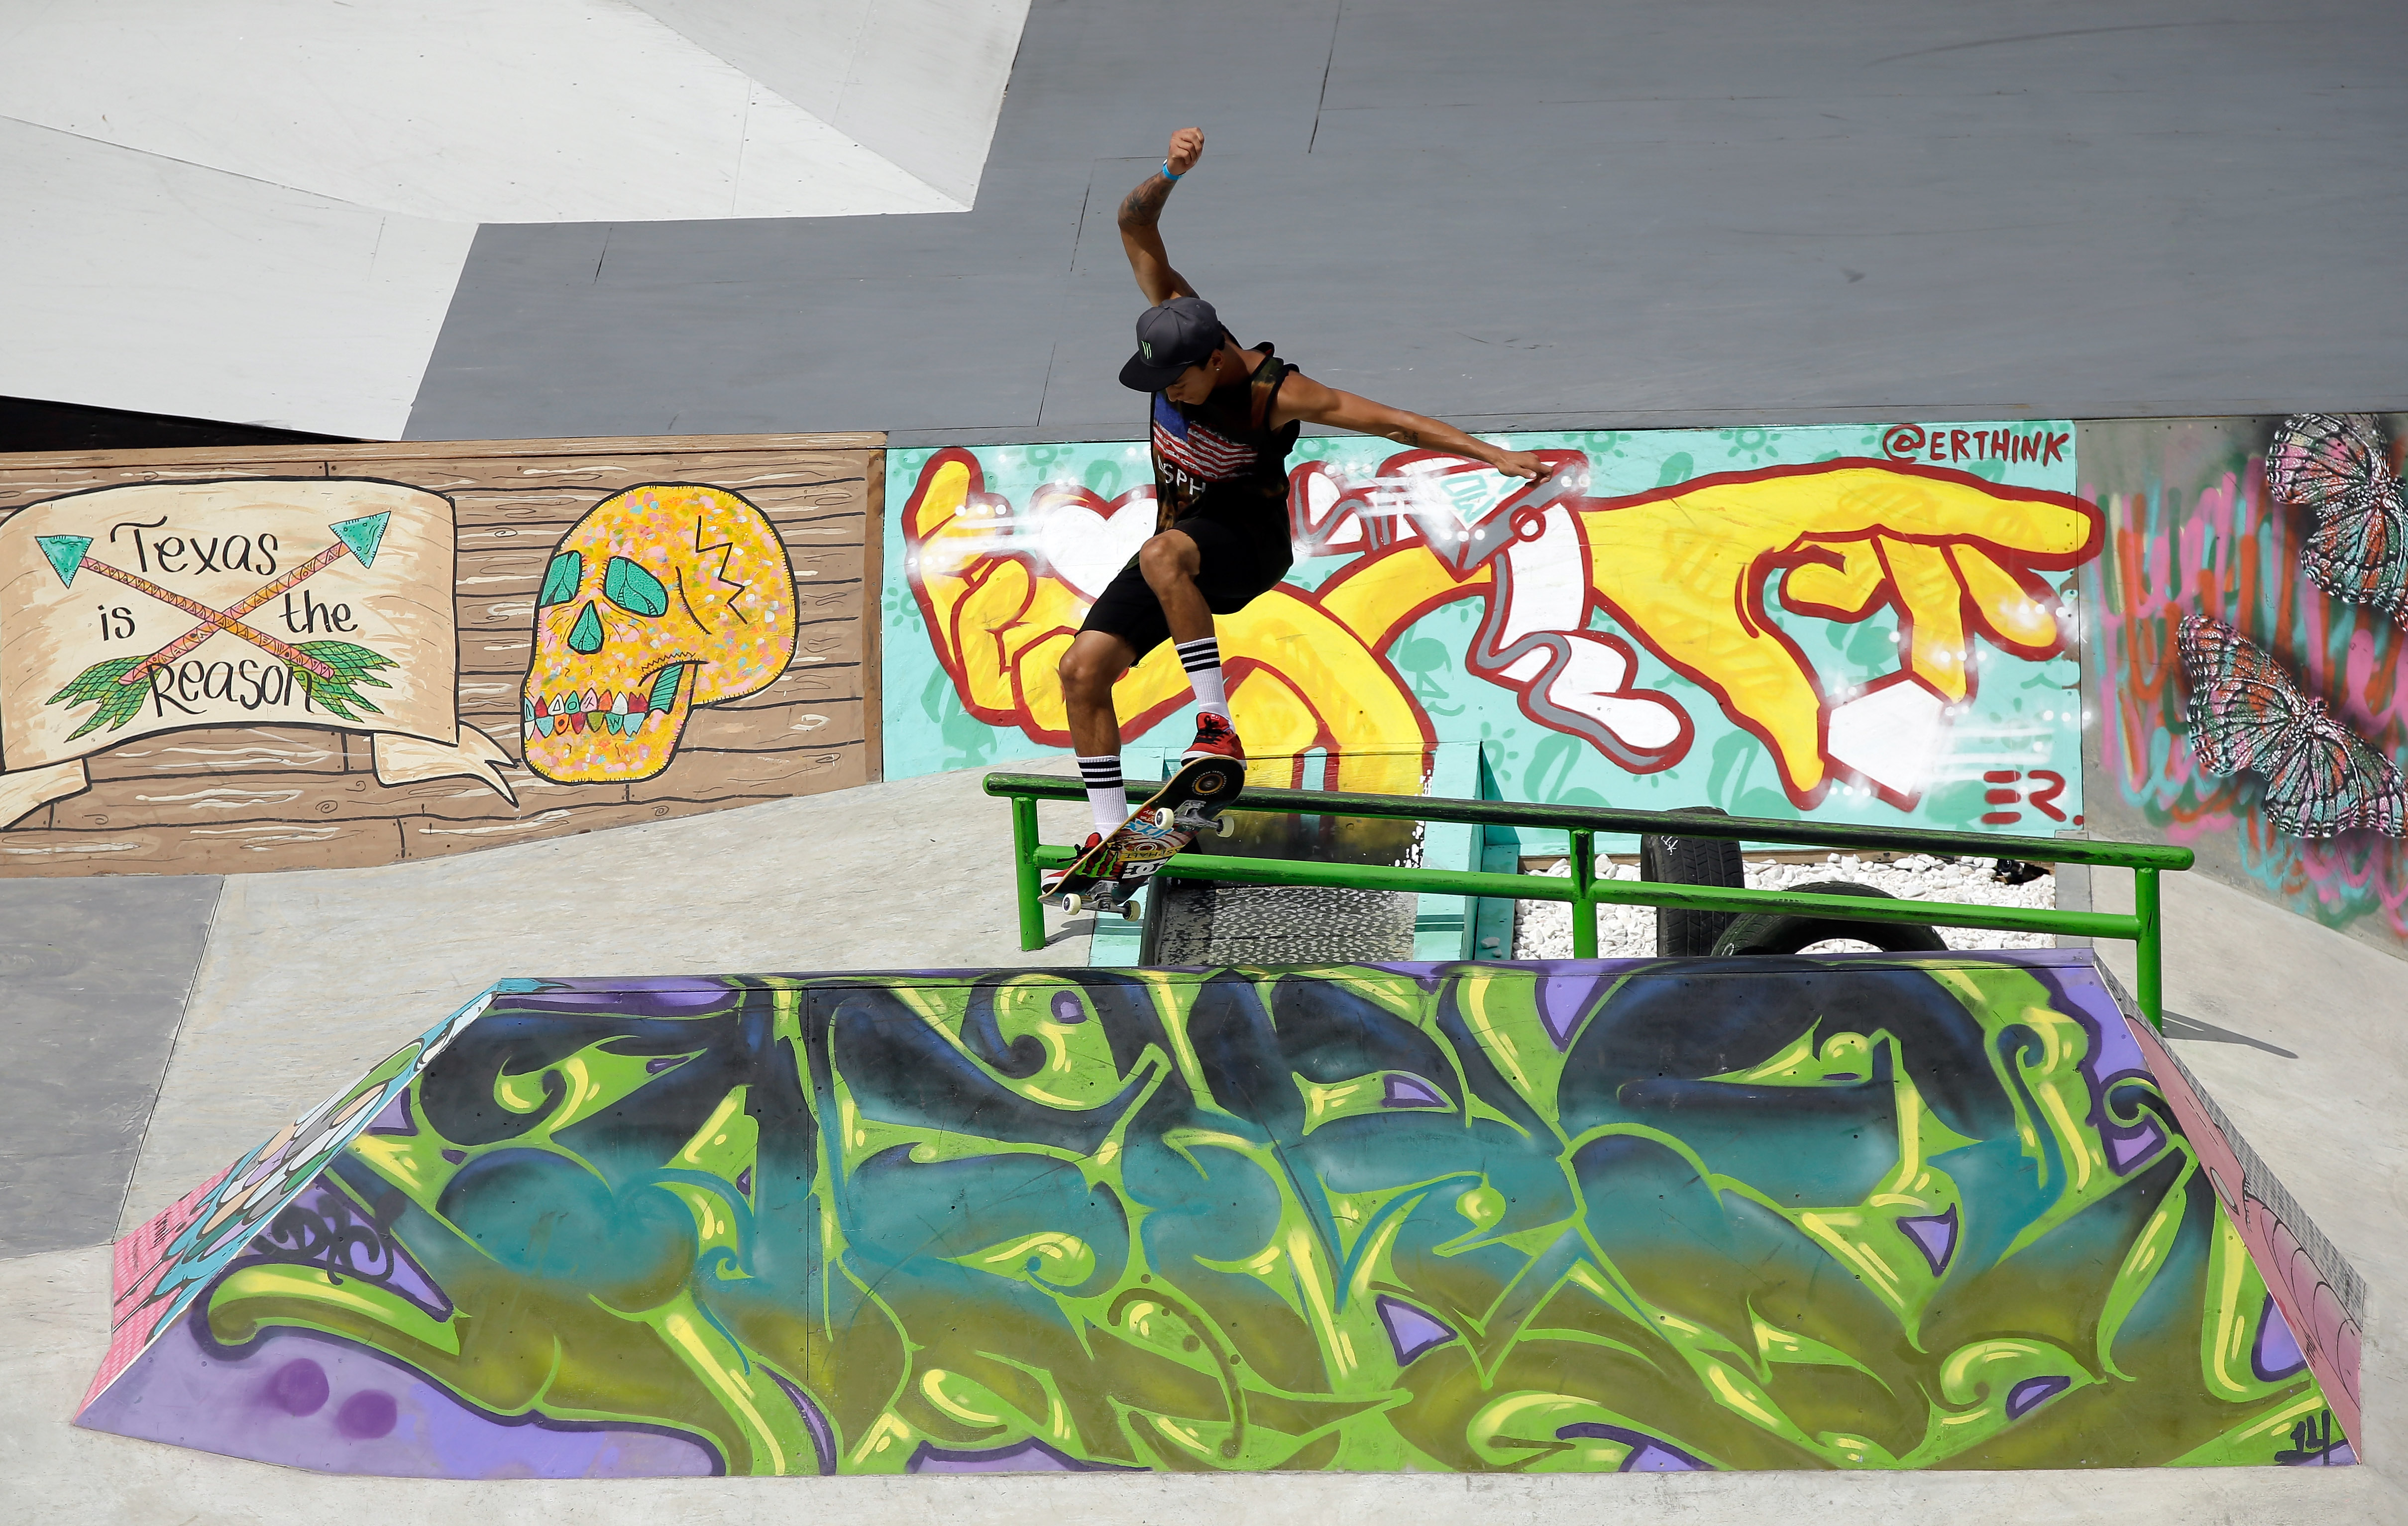 Nyjah Huston won his sixth X Games gold medal last month in Austin, Texas.